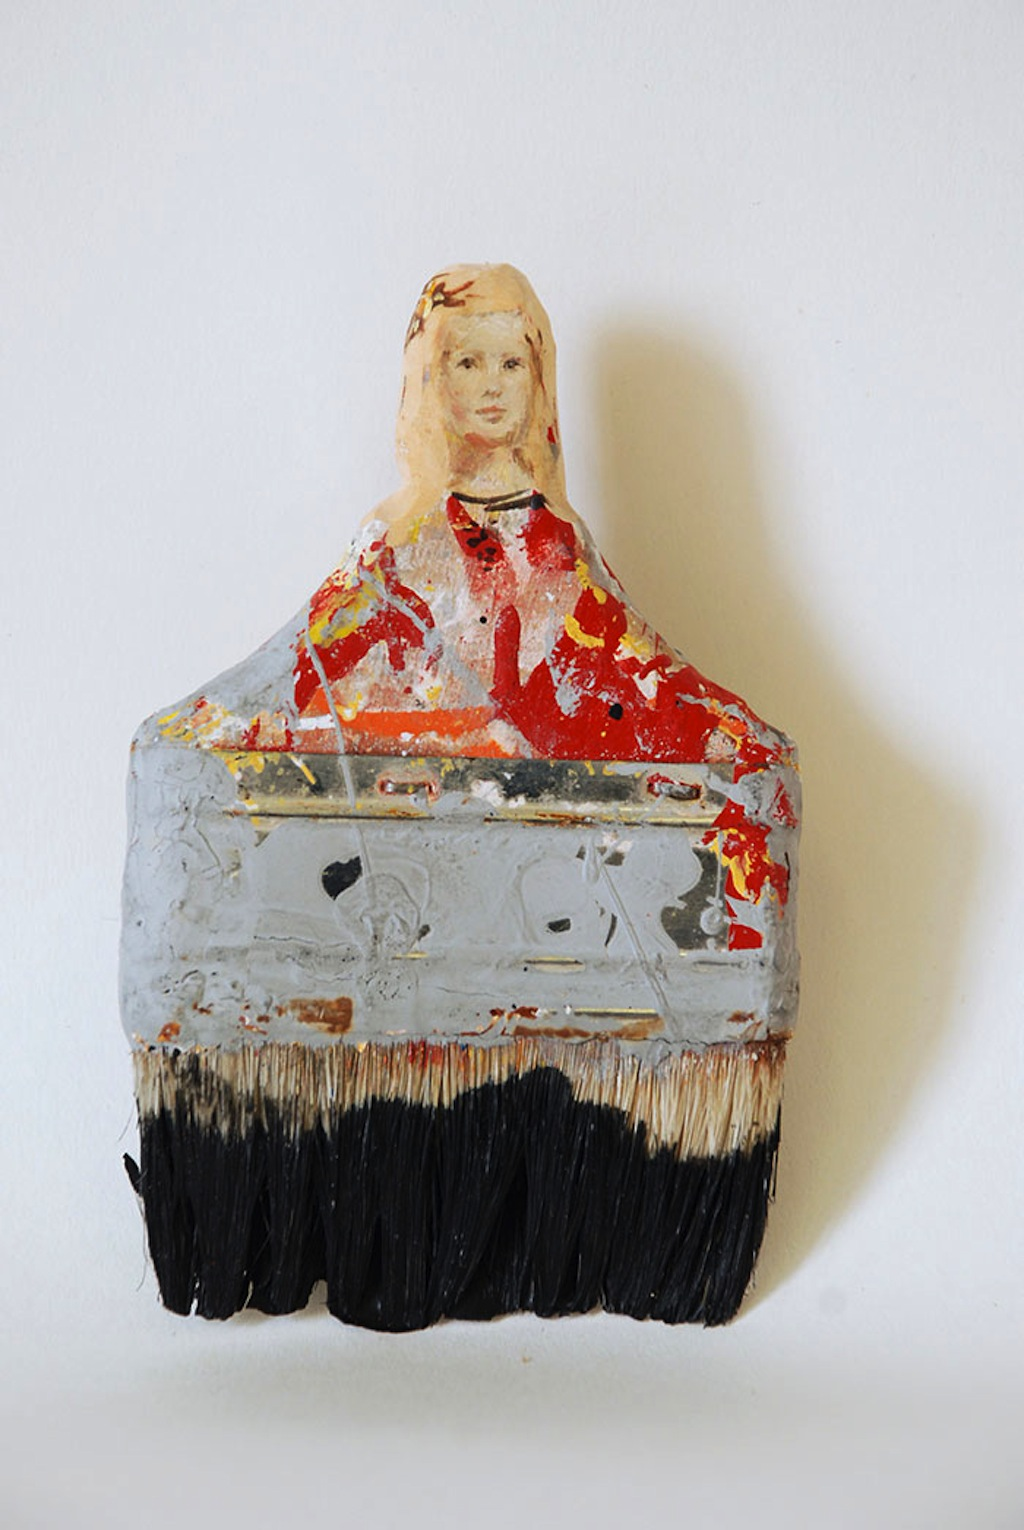 paintbrush-portraits-sculpture-art-rebecca-szeto-5